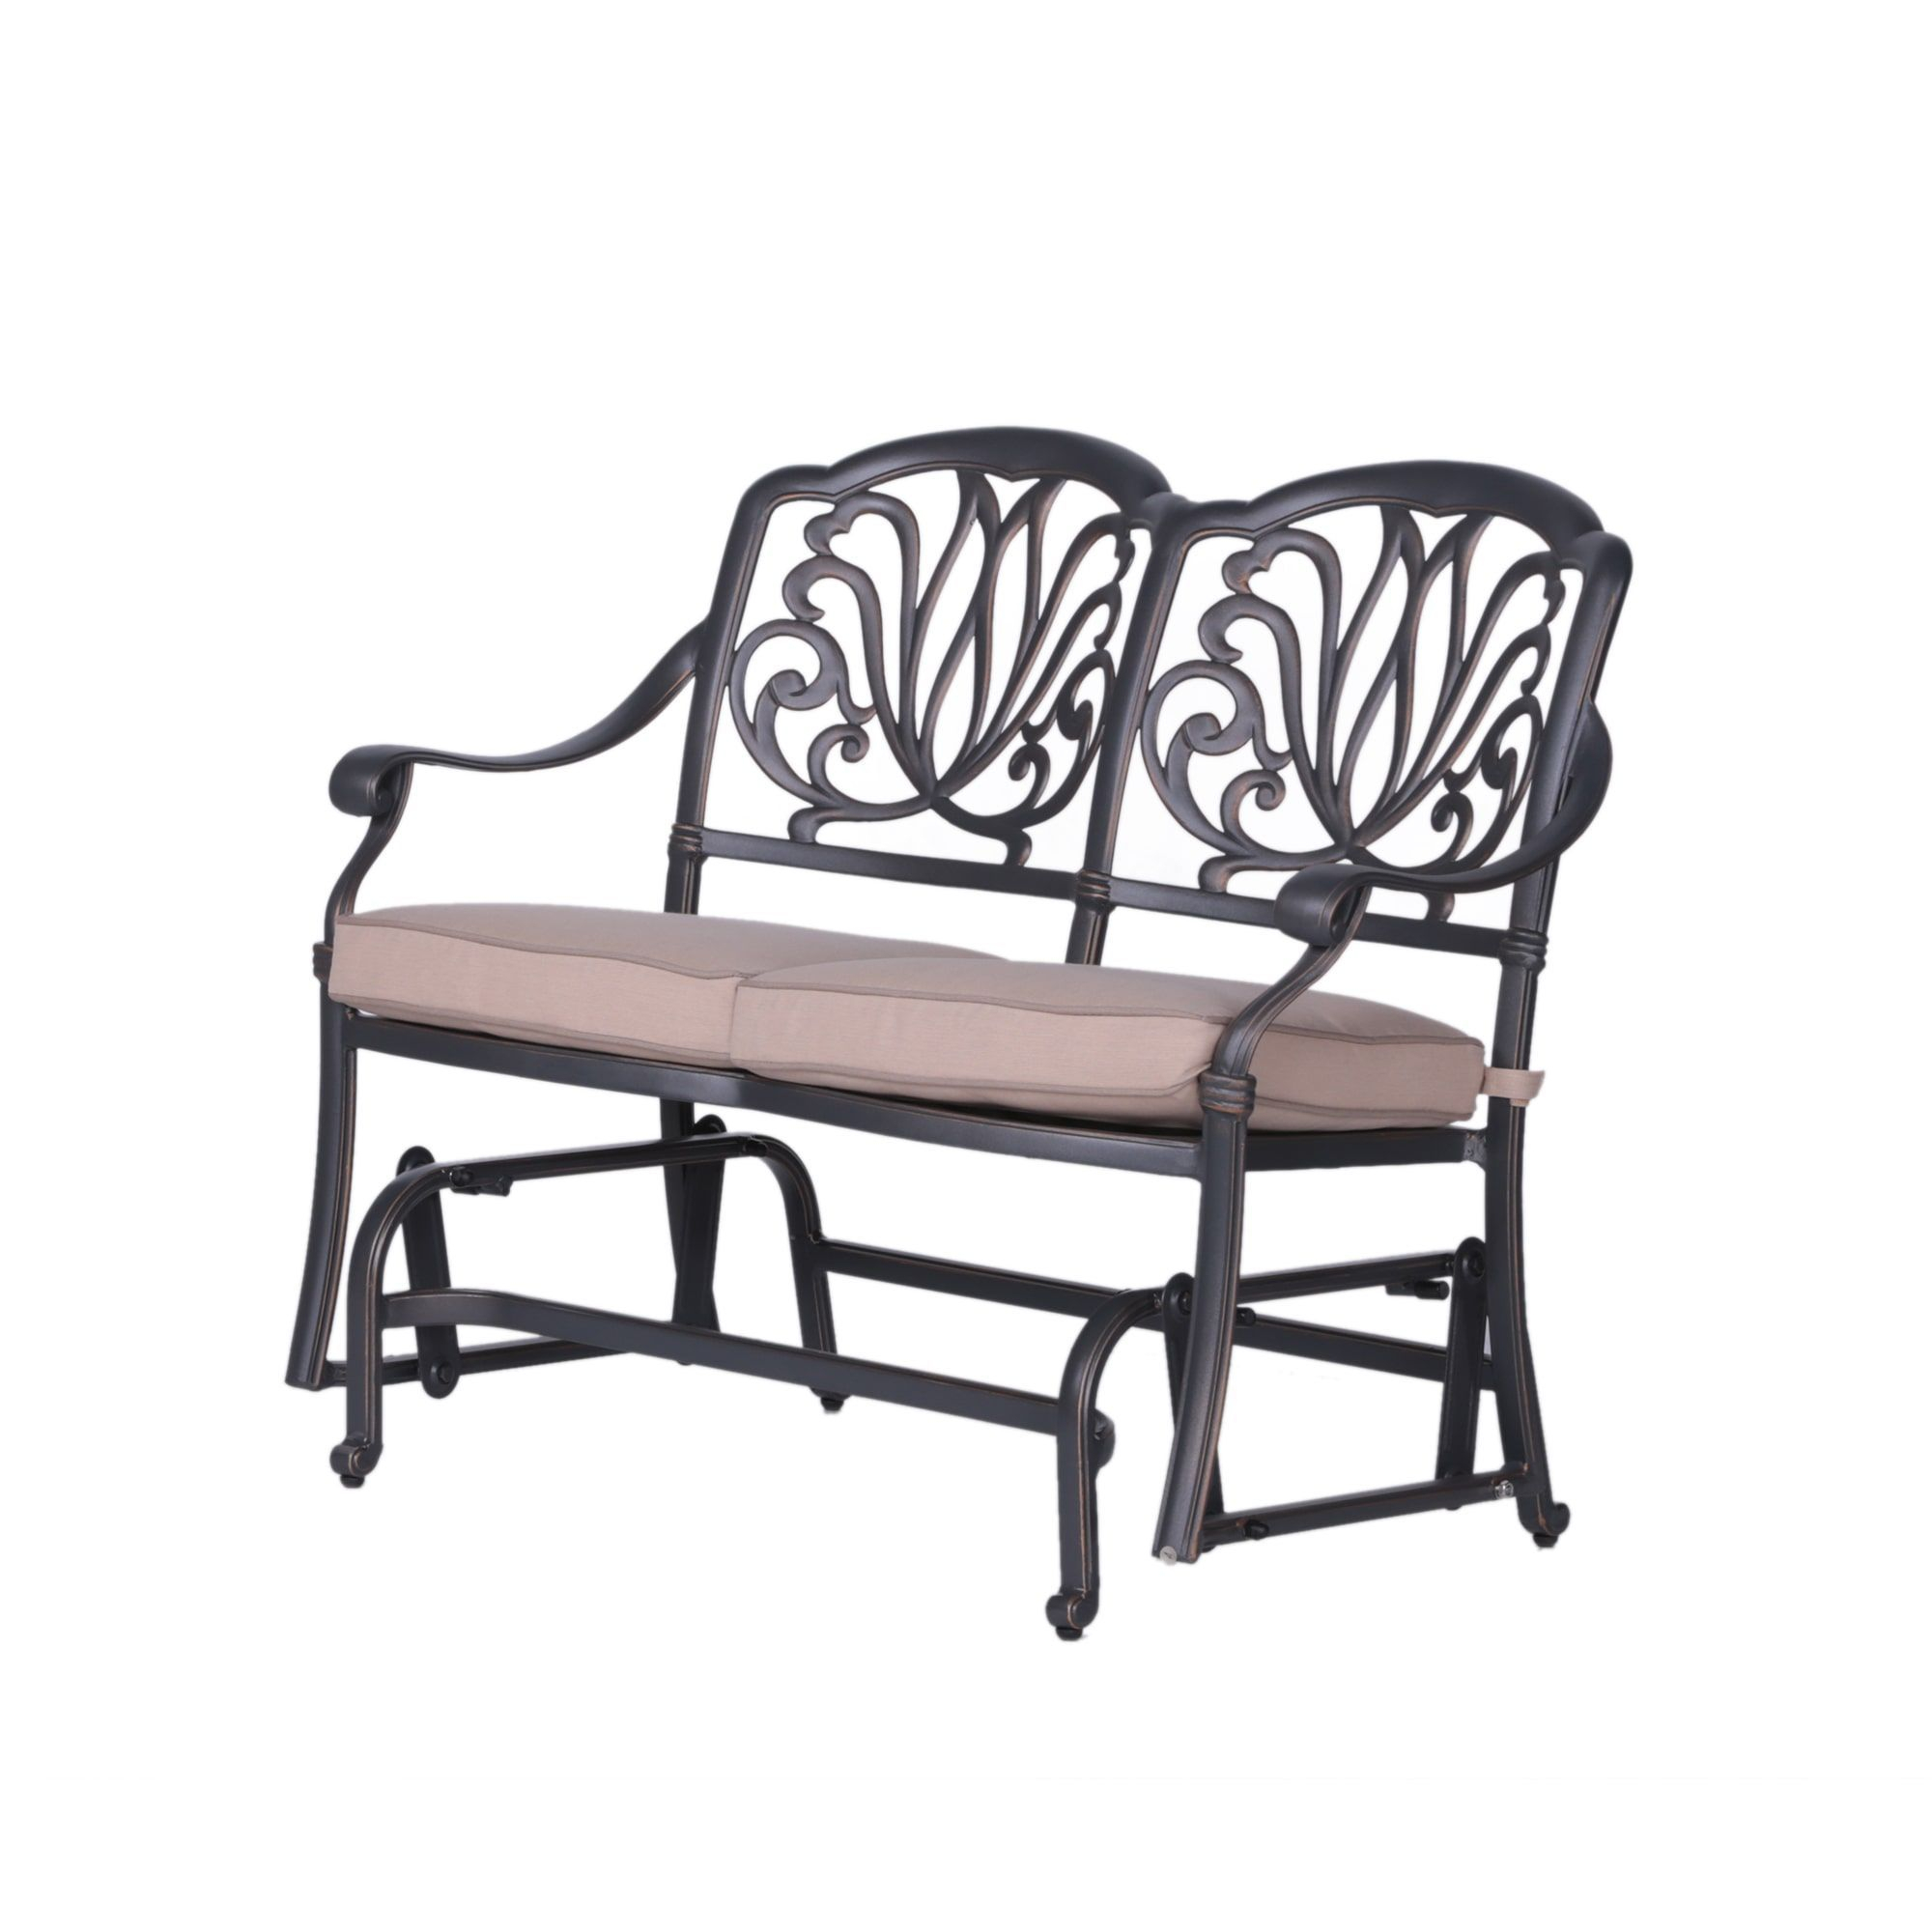 Saratoga Aluminum (Silver) Cushioned Bench Glider (Gray Within Iron Grove Slatted Glider Benches (View 4 of 26)